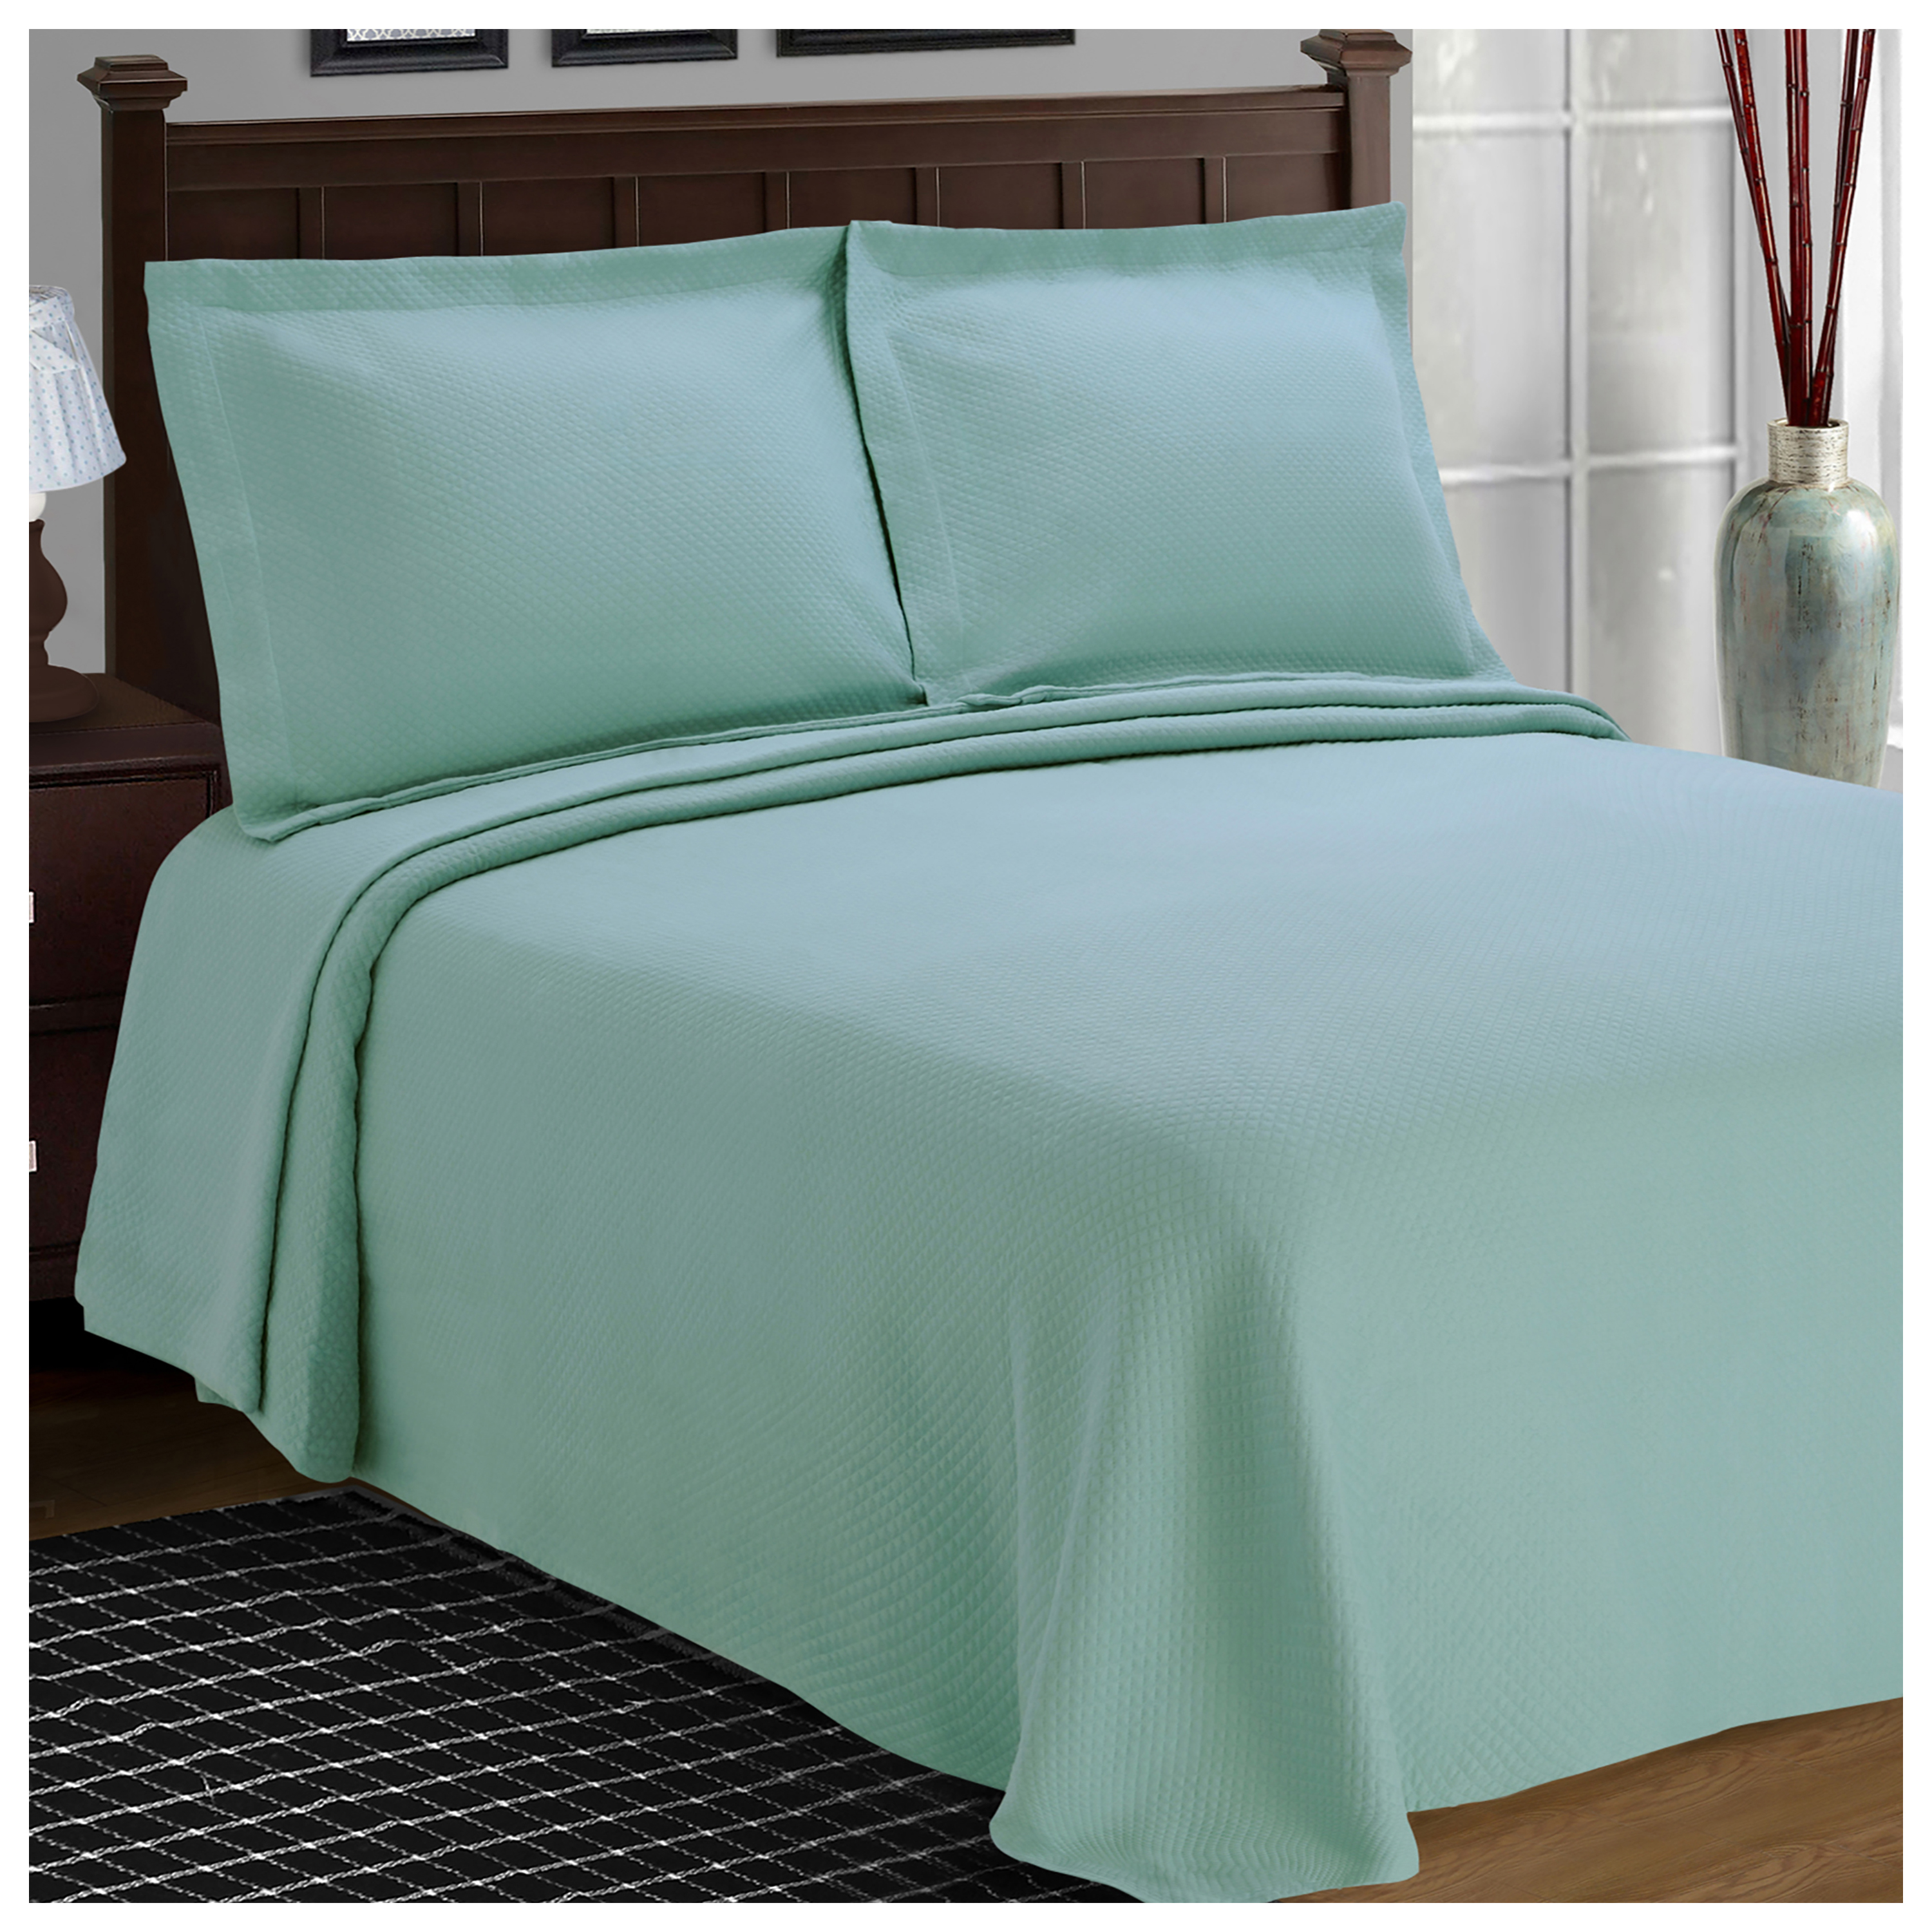 Superior 100-Percent Cotton Solitaire Matelasse Bedspread